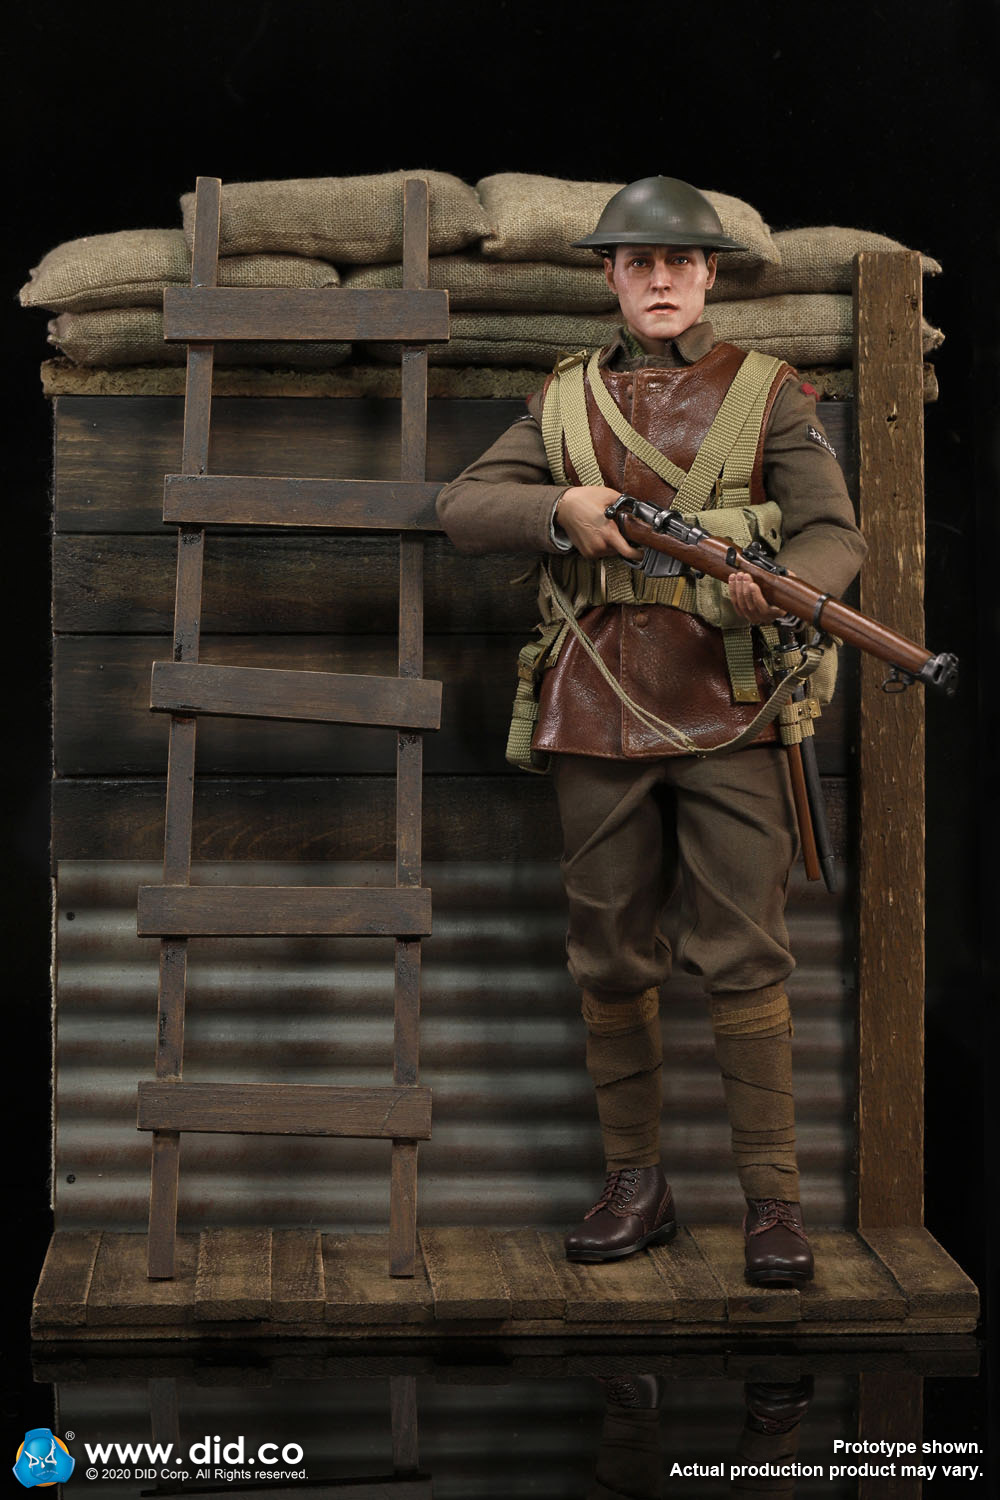 military - NEW PRODUCT: DiD: B11011 WWI British Infantry Lance Corporal William & Trench Diorama Set (UPDATED INFORMATION) 11342